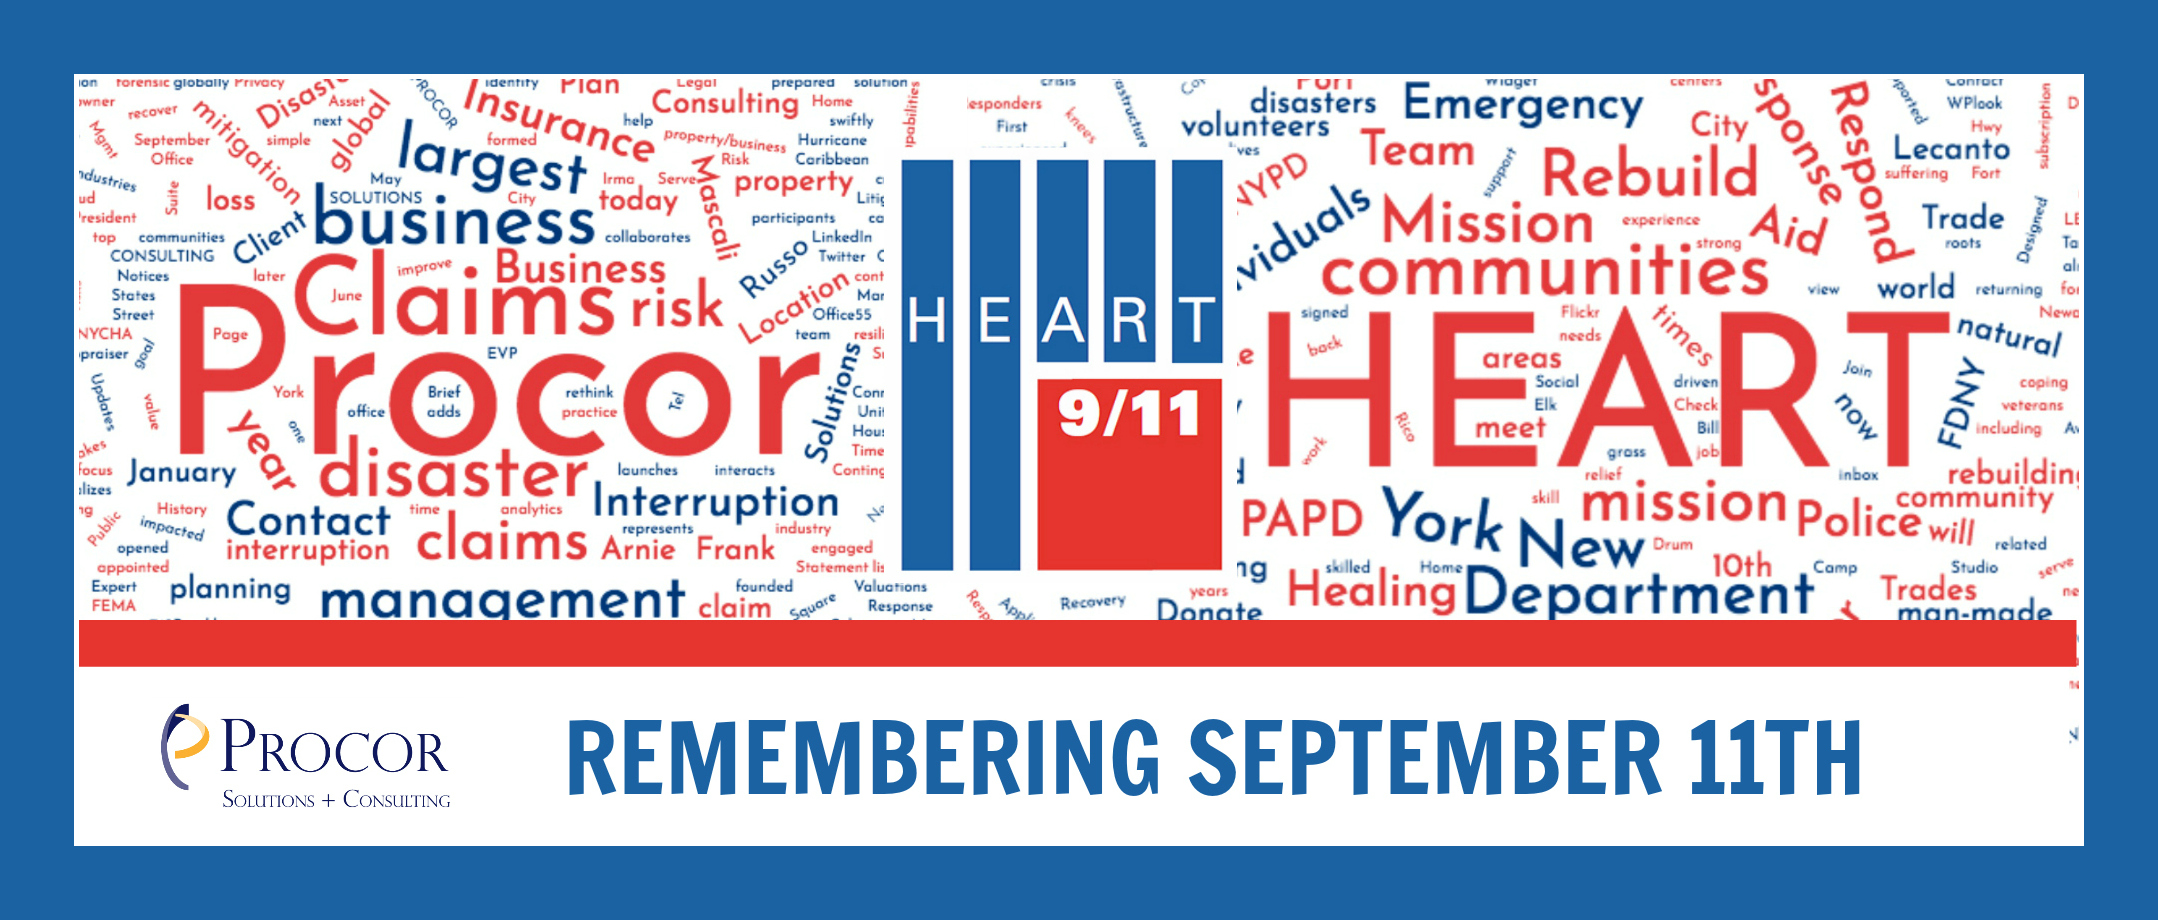 Remembering September 11th with Heart 9/11